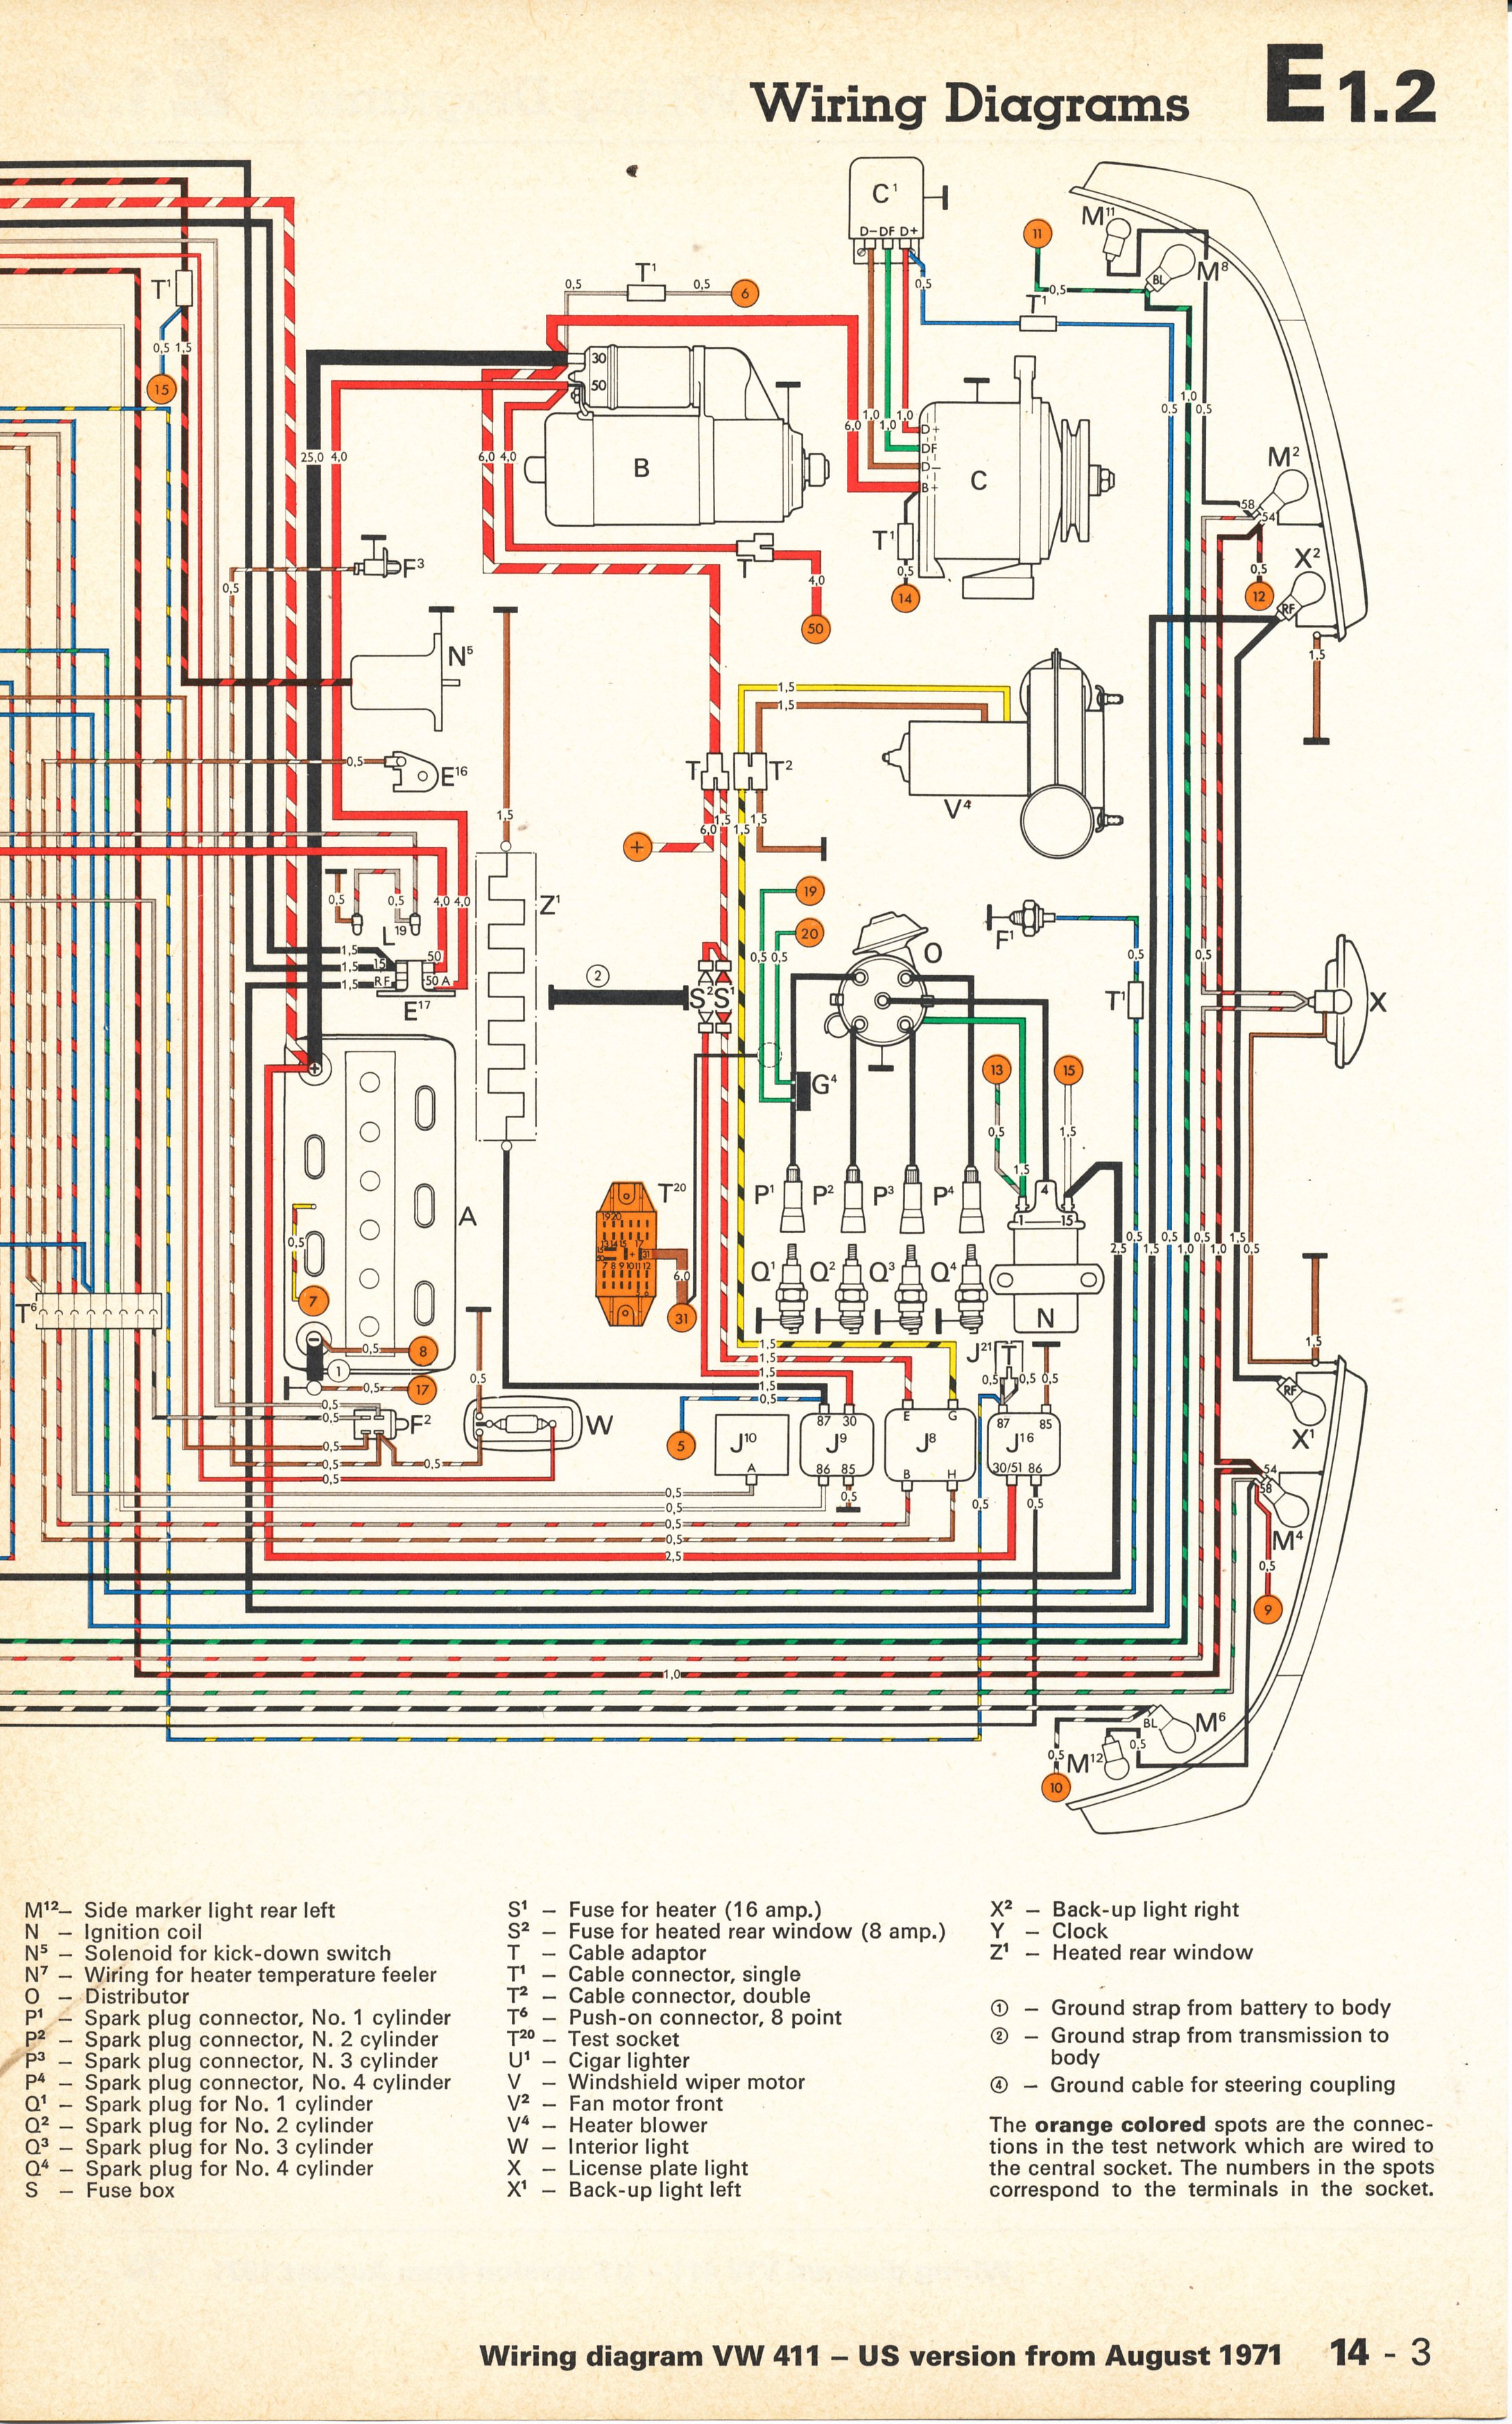 click wiring diagram  | 1518 x 2092